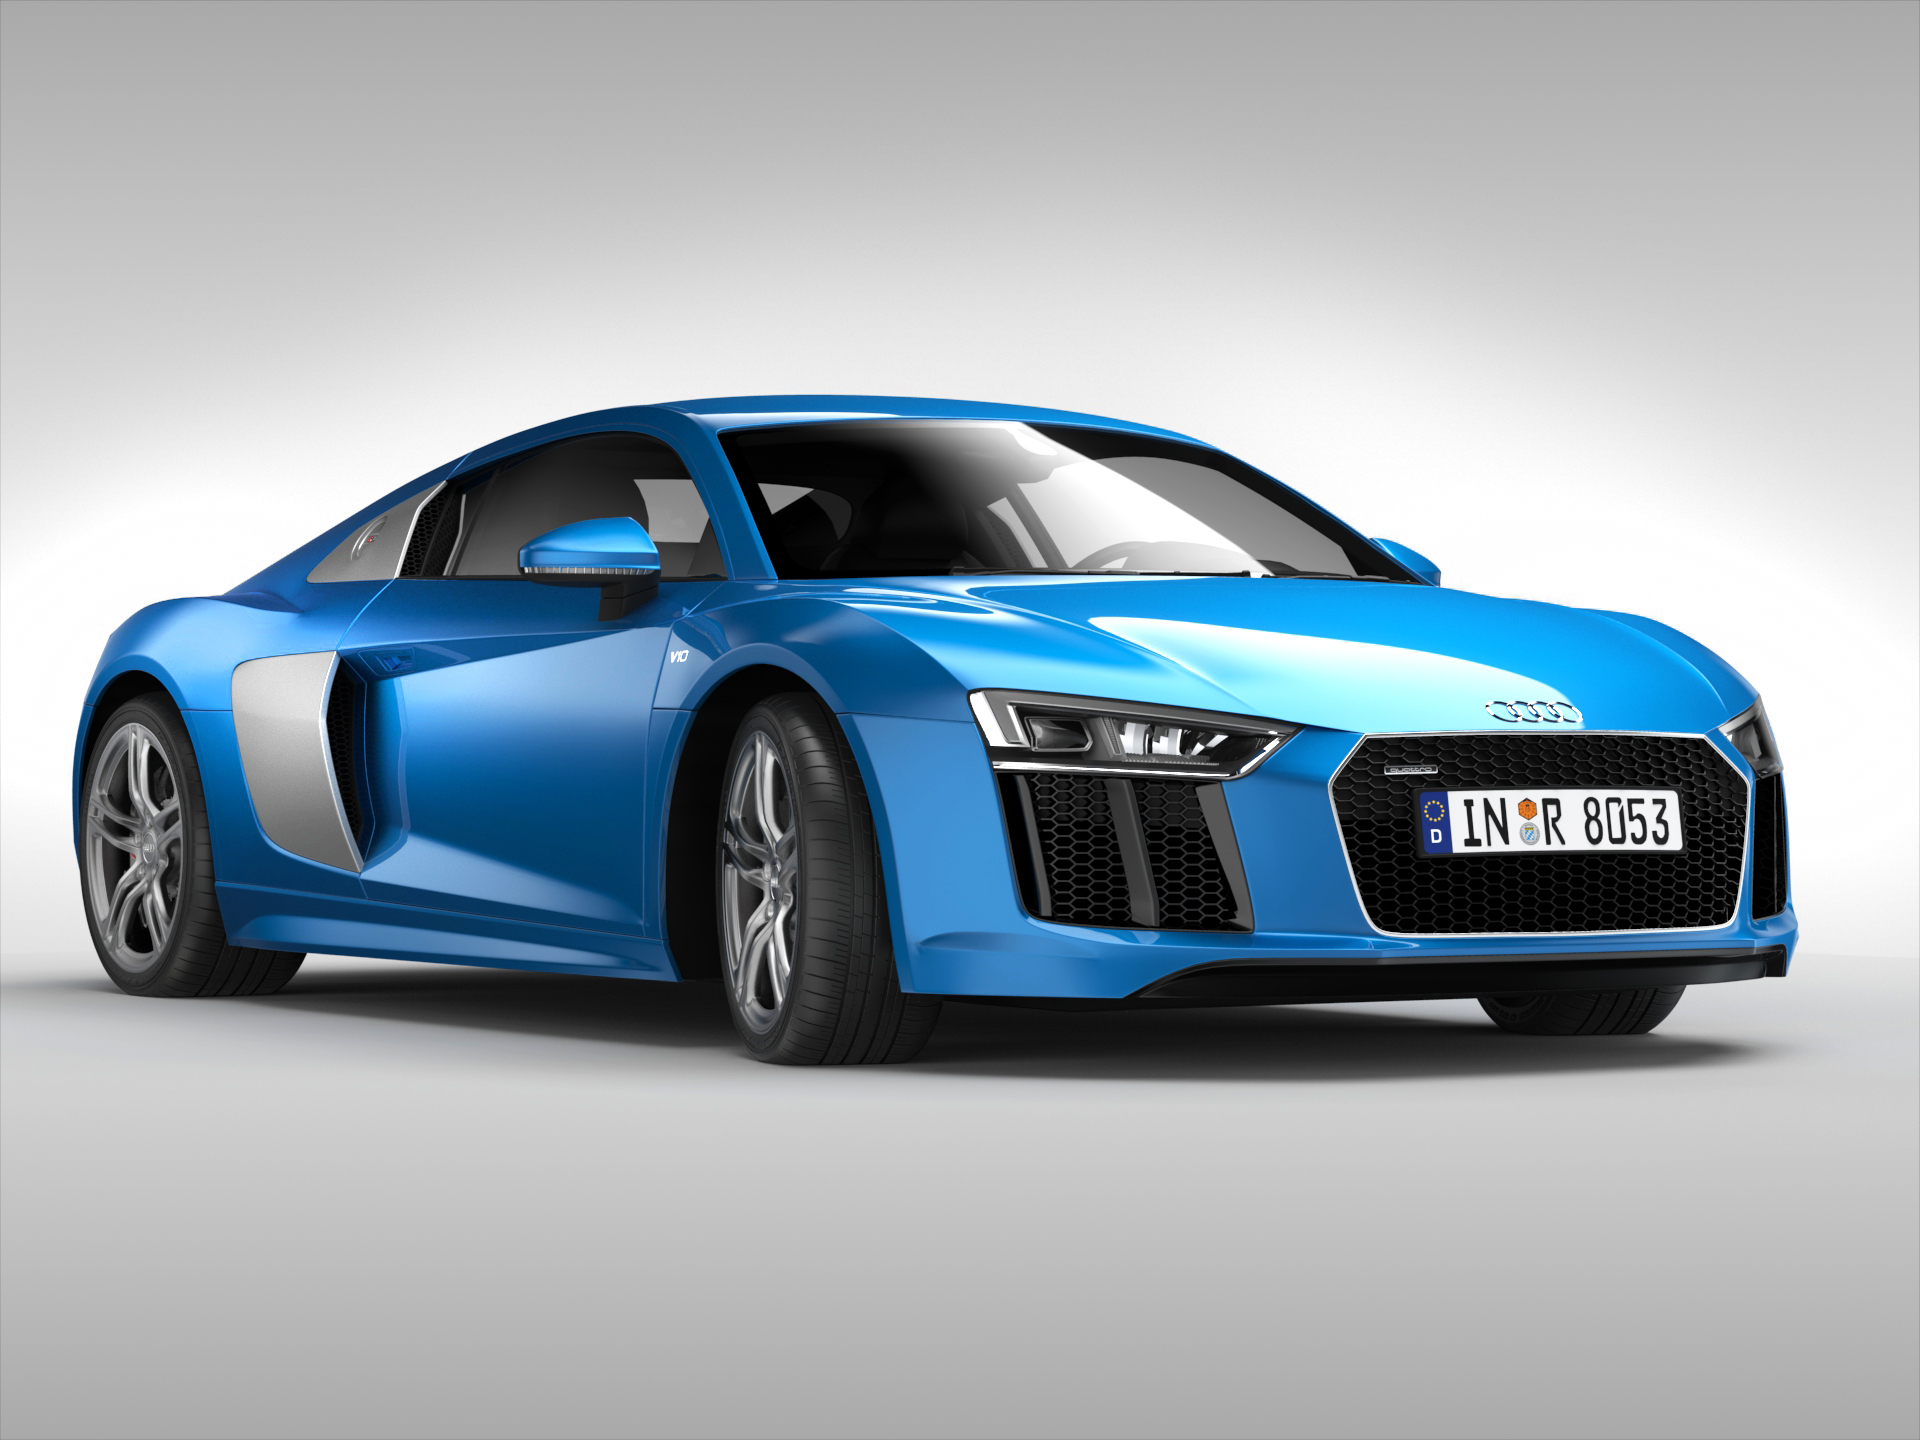 audi r8 v10 coupe 2016 3d model buy audi r8 v10 coupe. Black Bedroom Furniture Sets. Home Design Ideas